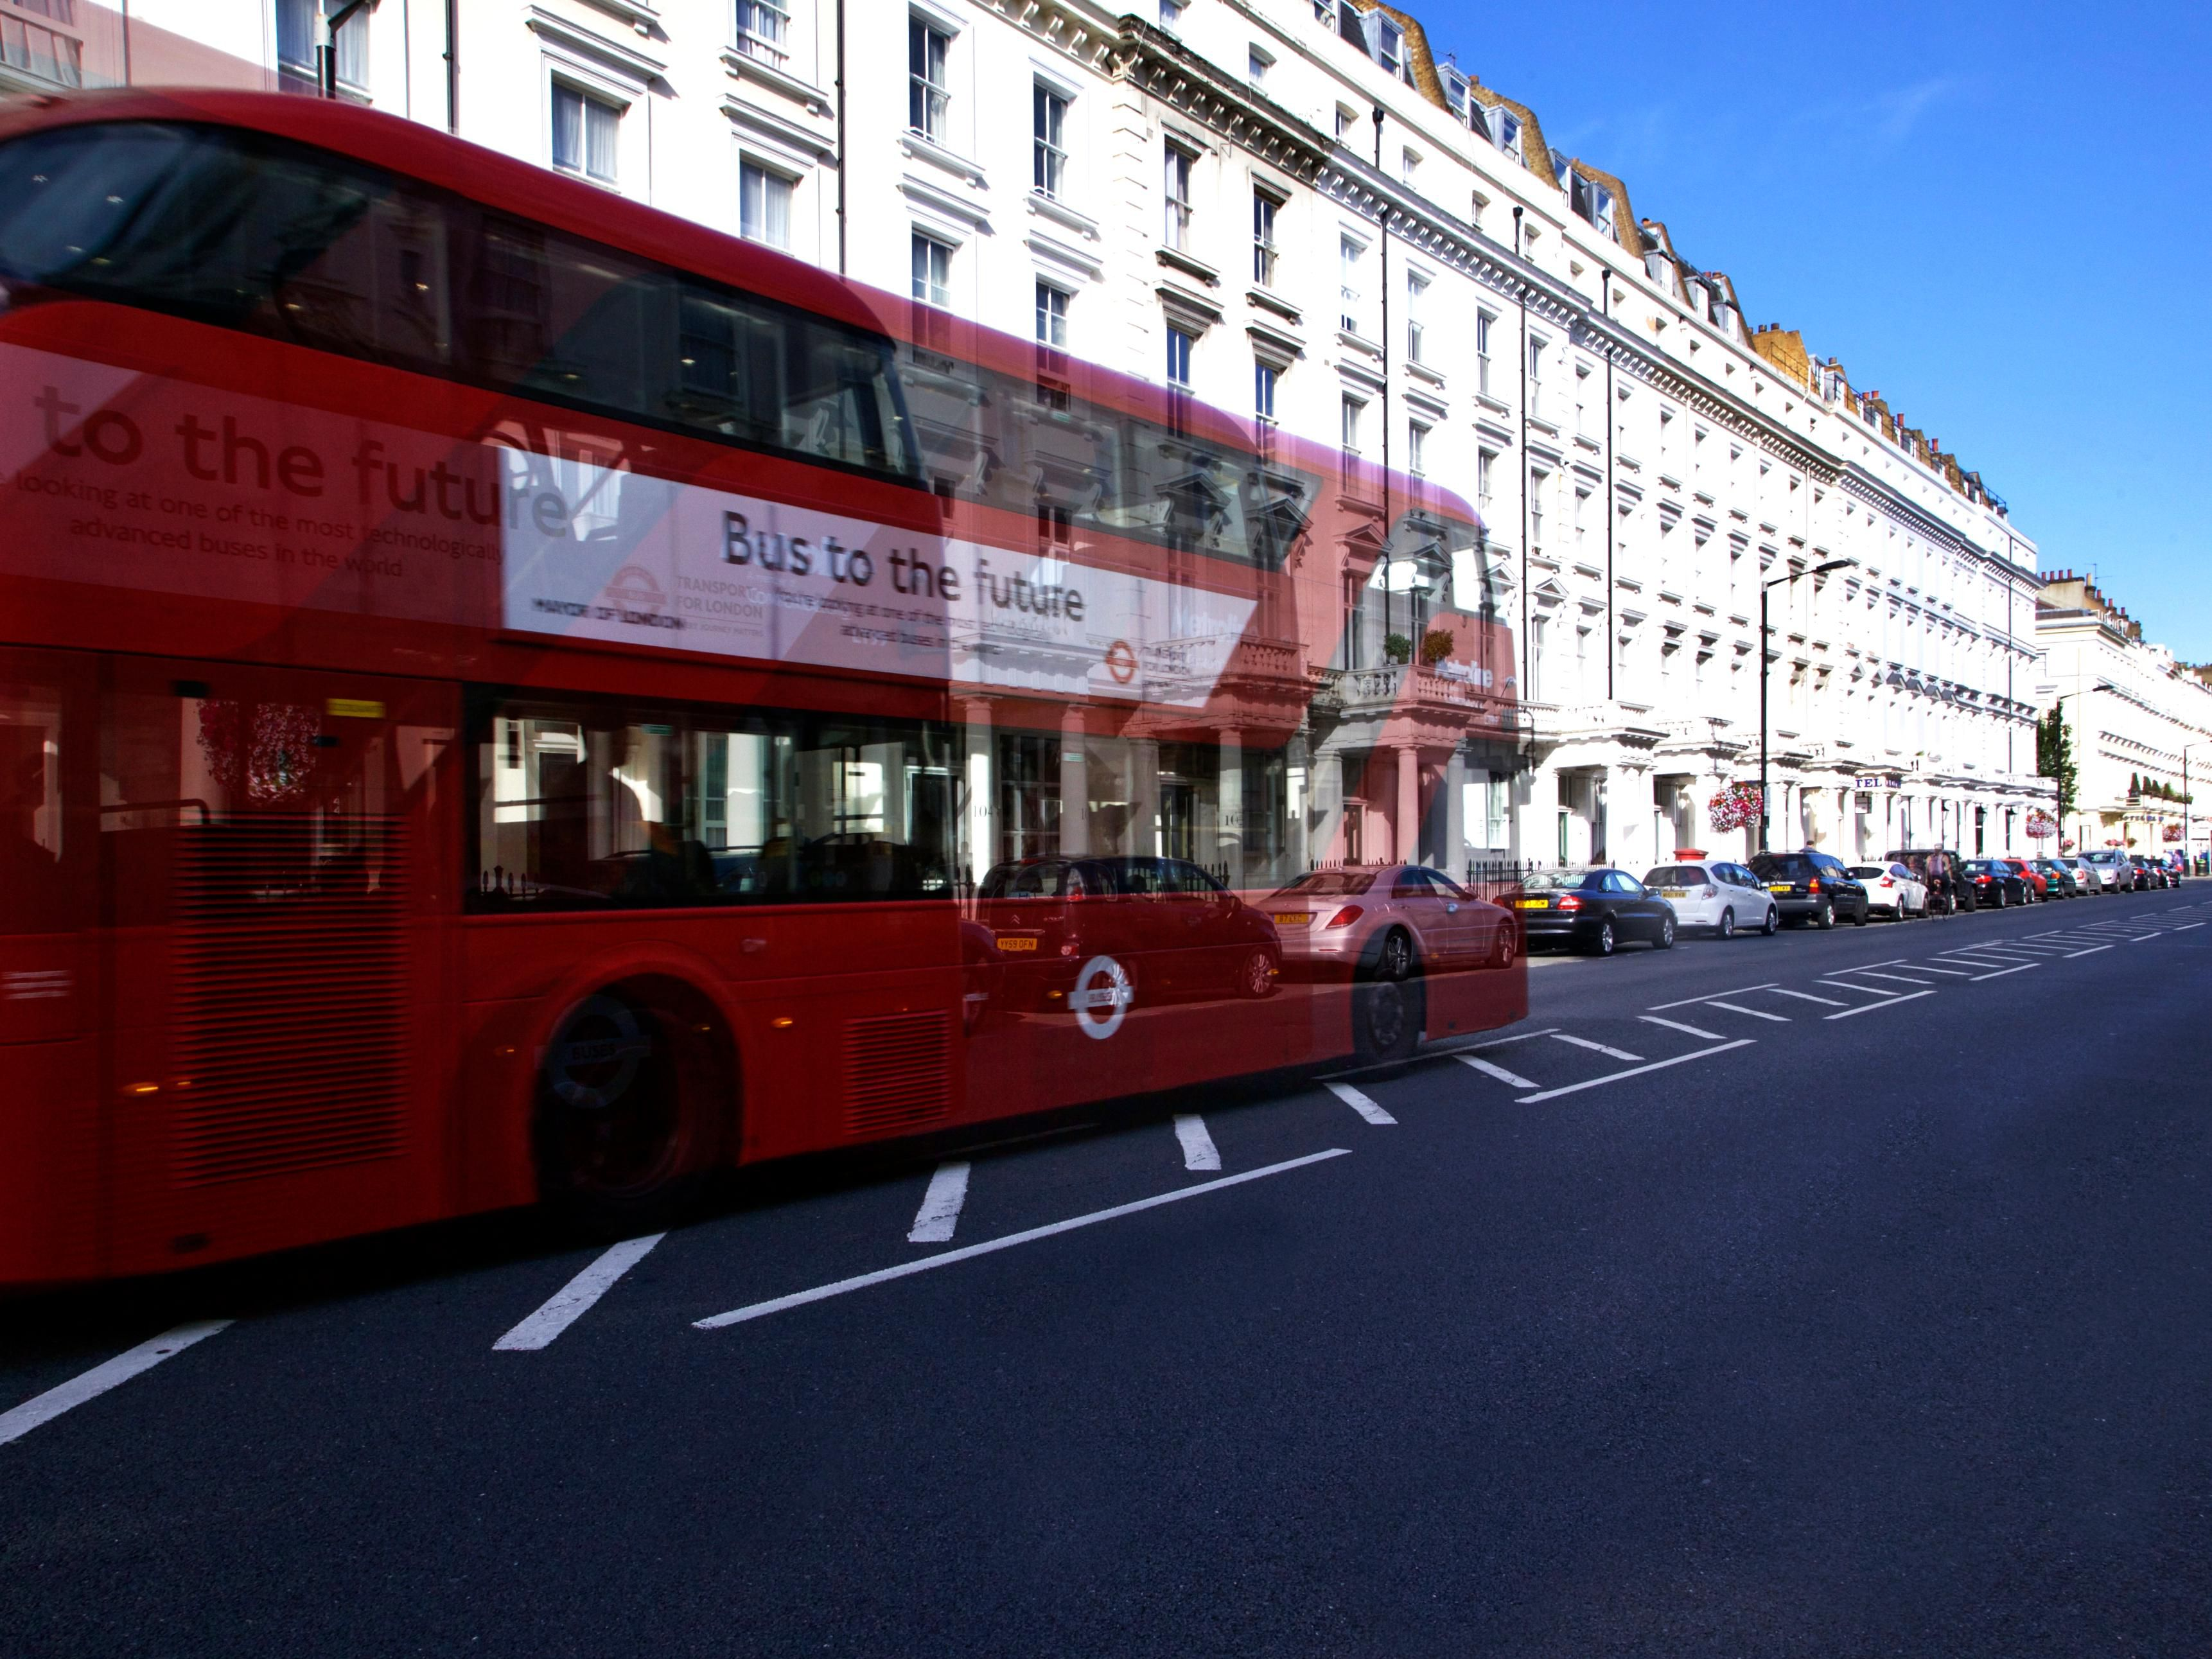 Bus Route 24 passing outside the hotel